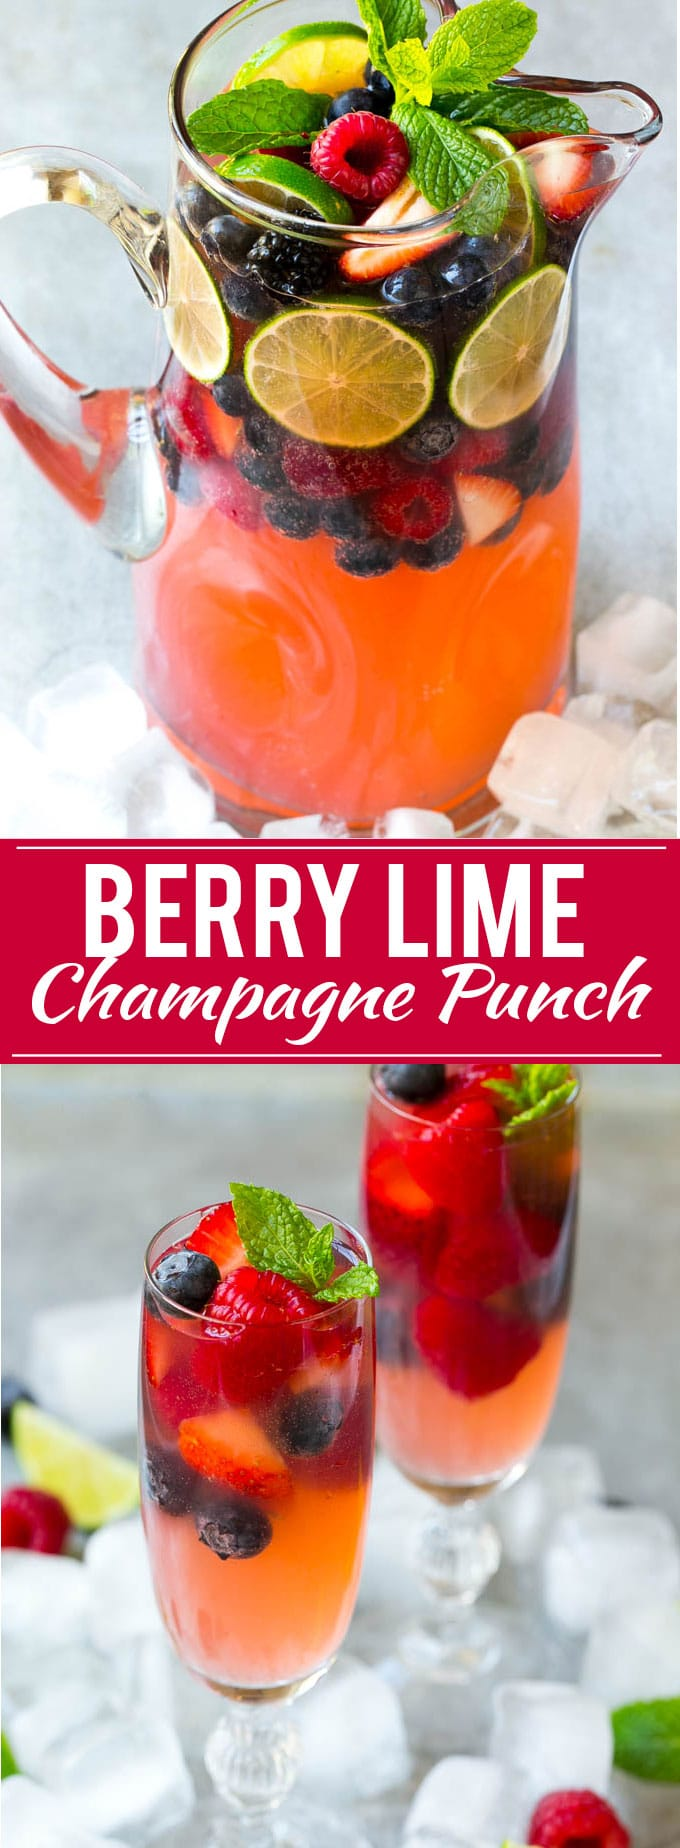 Berry Champagne Punch Recipe | Champagne Cocktail | Lime Cocktail | Berry Punch | Champagne Recipe #champagne #punch #berries #drink #dinneratthezoo